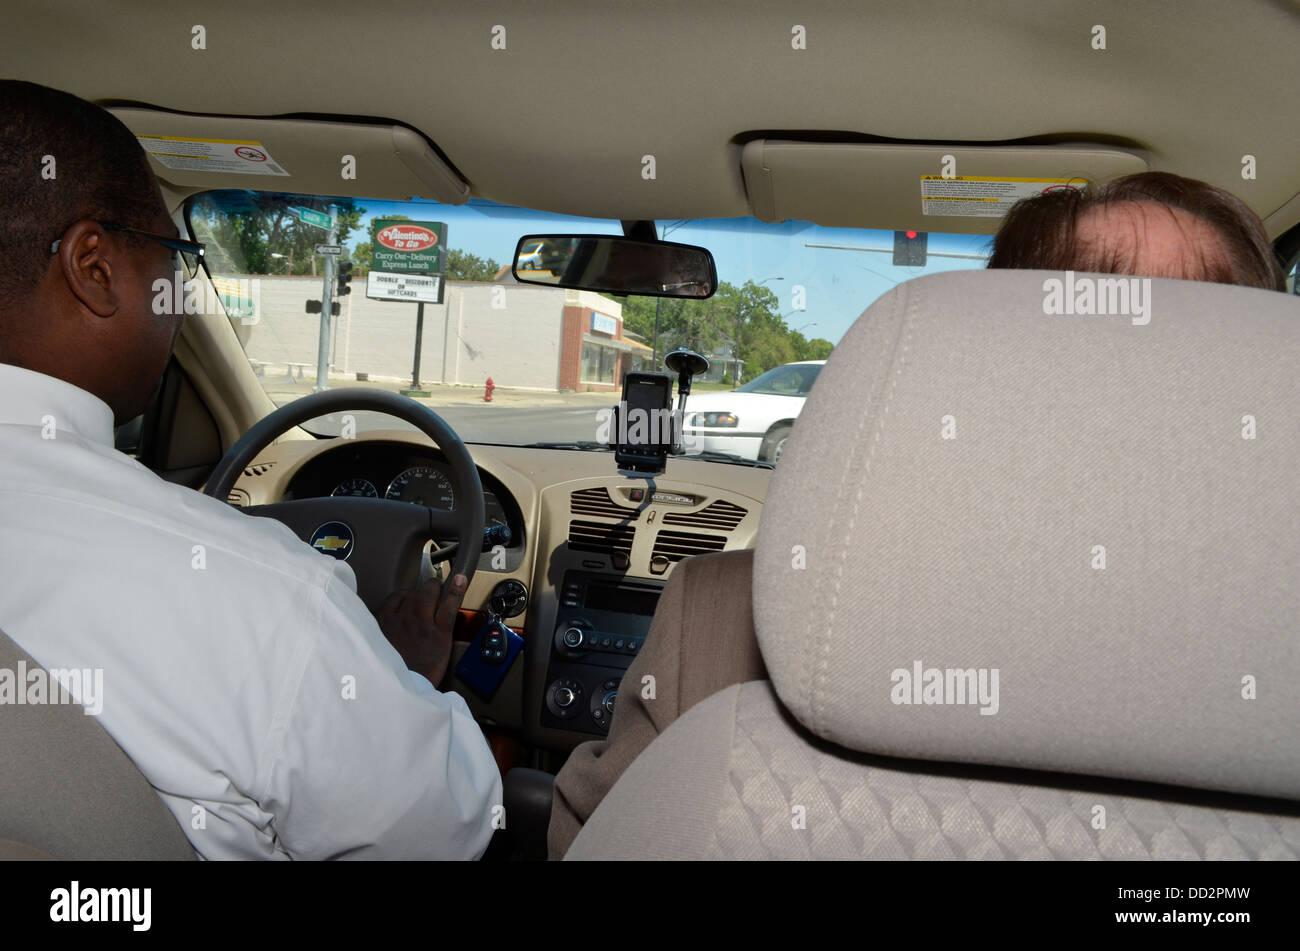 Two male parole officers in vehicle on their way to meet a parolee at his place of work. - Stock Image